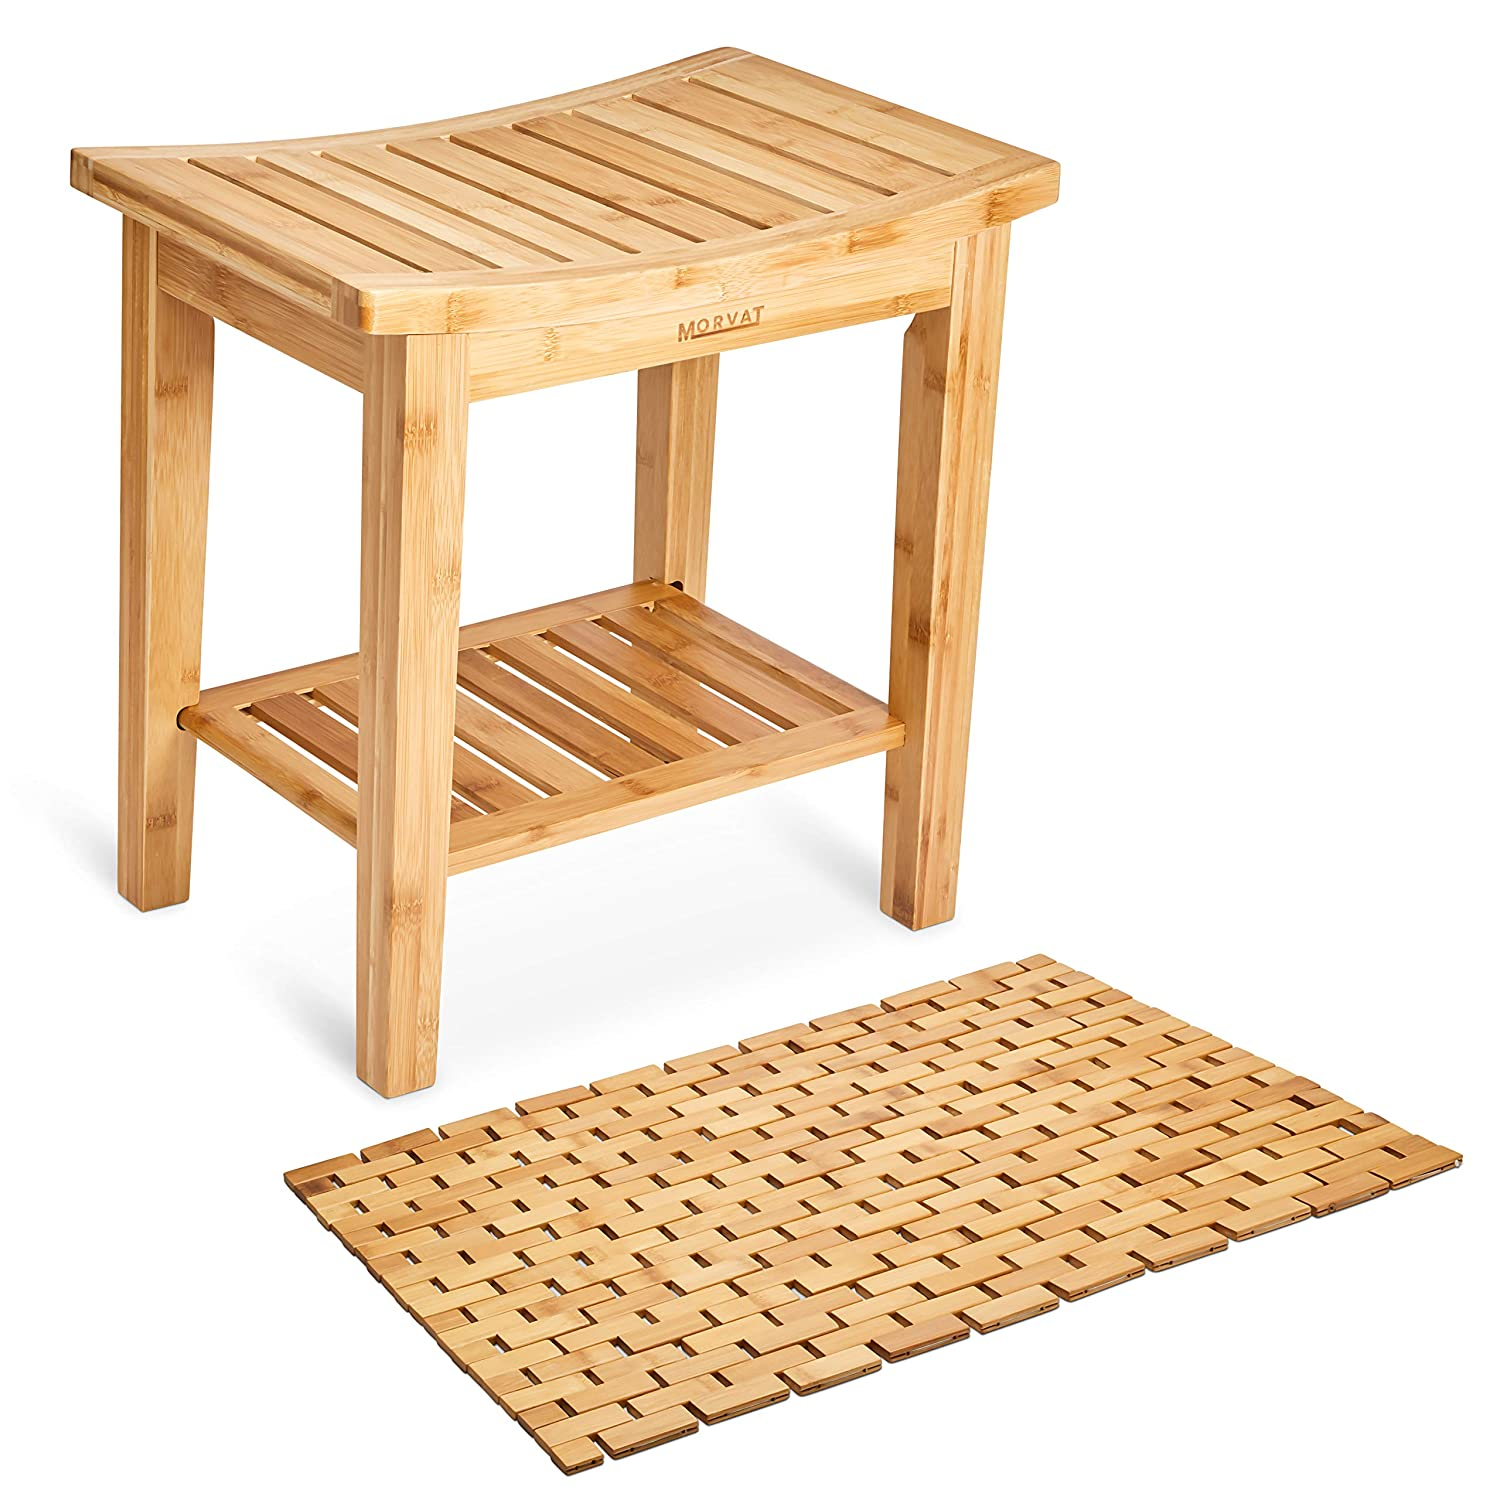 "Morvat Bamboo Shower Bench and Bamboo Shower Mat, Shower Seat, Bathroom Furniture, Shower Chair, Tub Bench, Bathroom Bench, Small Wood Bench, Made from Durable, Waterproof Bamboo Wood, 19""x18""x12"""